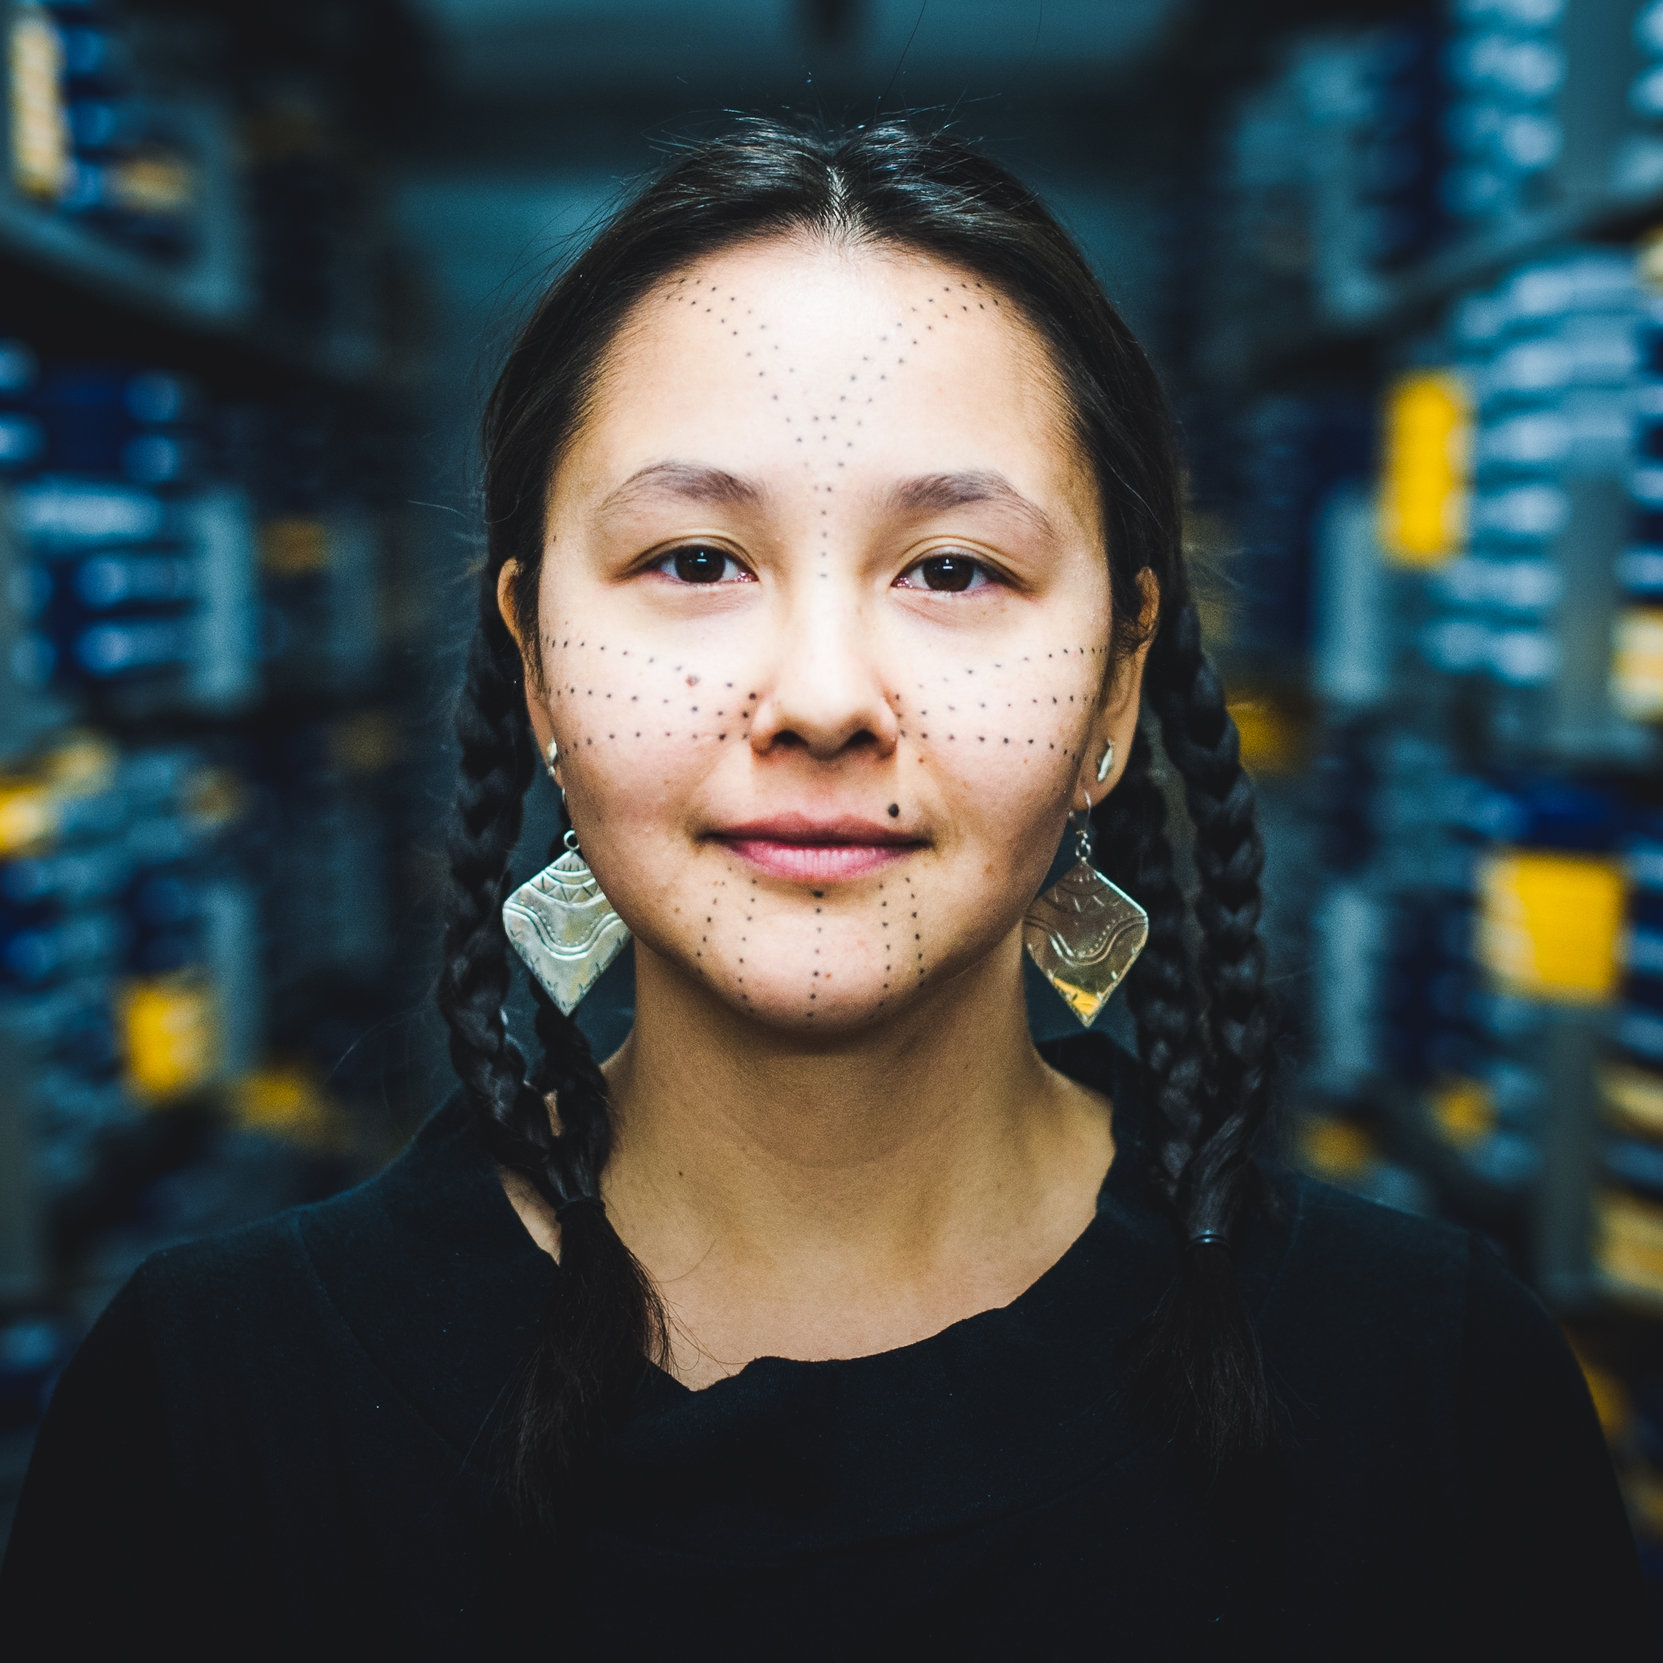 Asinnajaq - Asinnajaq, also known as Isabella Rose Weetaluktuk, is a visual artist, filmmaker and writer based in Montreal. Asinnajaq's practice is grounded in research and collaboration, which includes working with other artists, friends and family. In 2016 she worked with the National Film Board of Canada's archive to source historical and contemporary Inuit films and colonial representations of Inuit in film. The footage she pulled is included in her short film Three Thousand, which has screened around the world including the 68th Berlinale. The film was nominated for Best Short Documentary at the 2018 Canadian Screen Awards by the Academy of Canadian Cinema & Television.